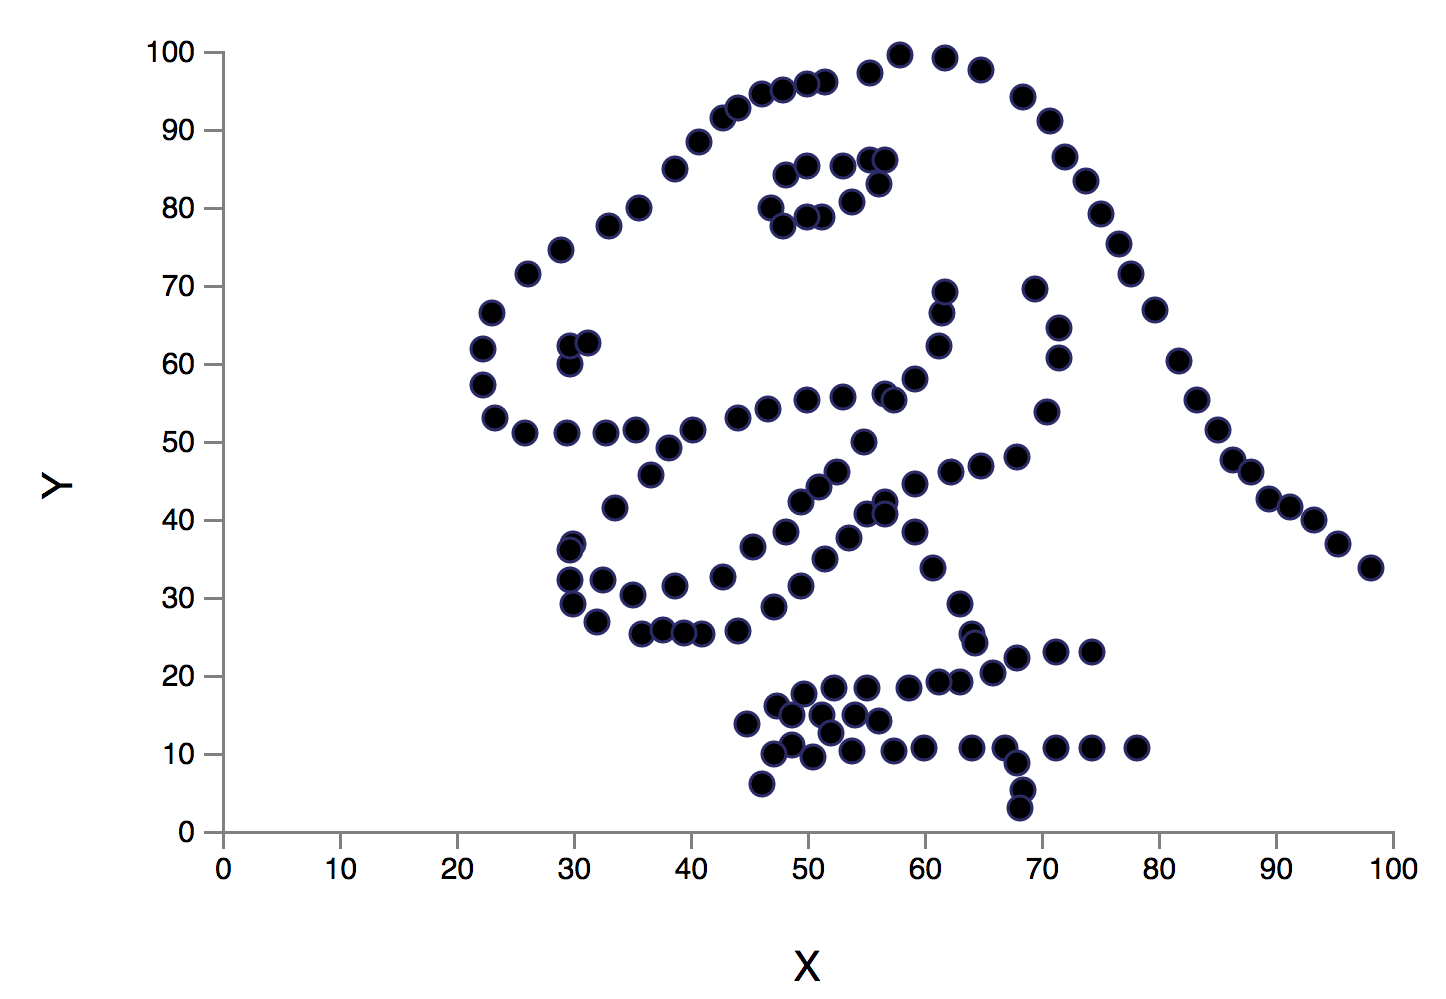 The Datasaurus to illustrate how important it is to visualize data while analyzing it